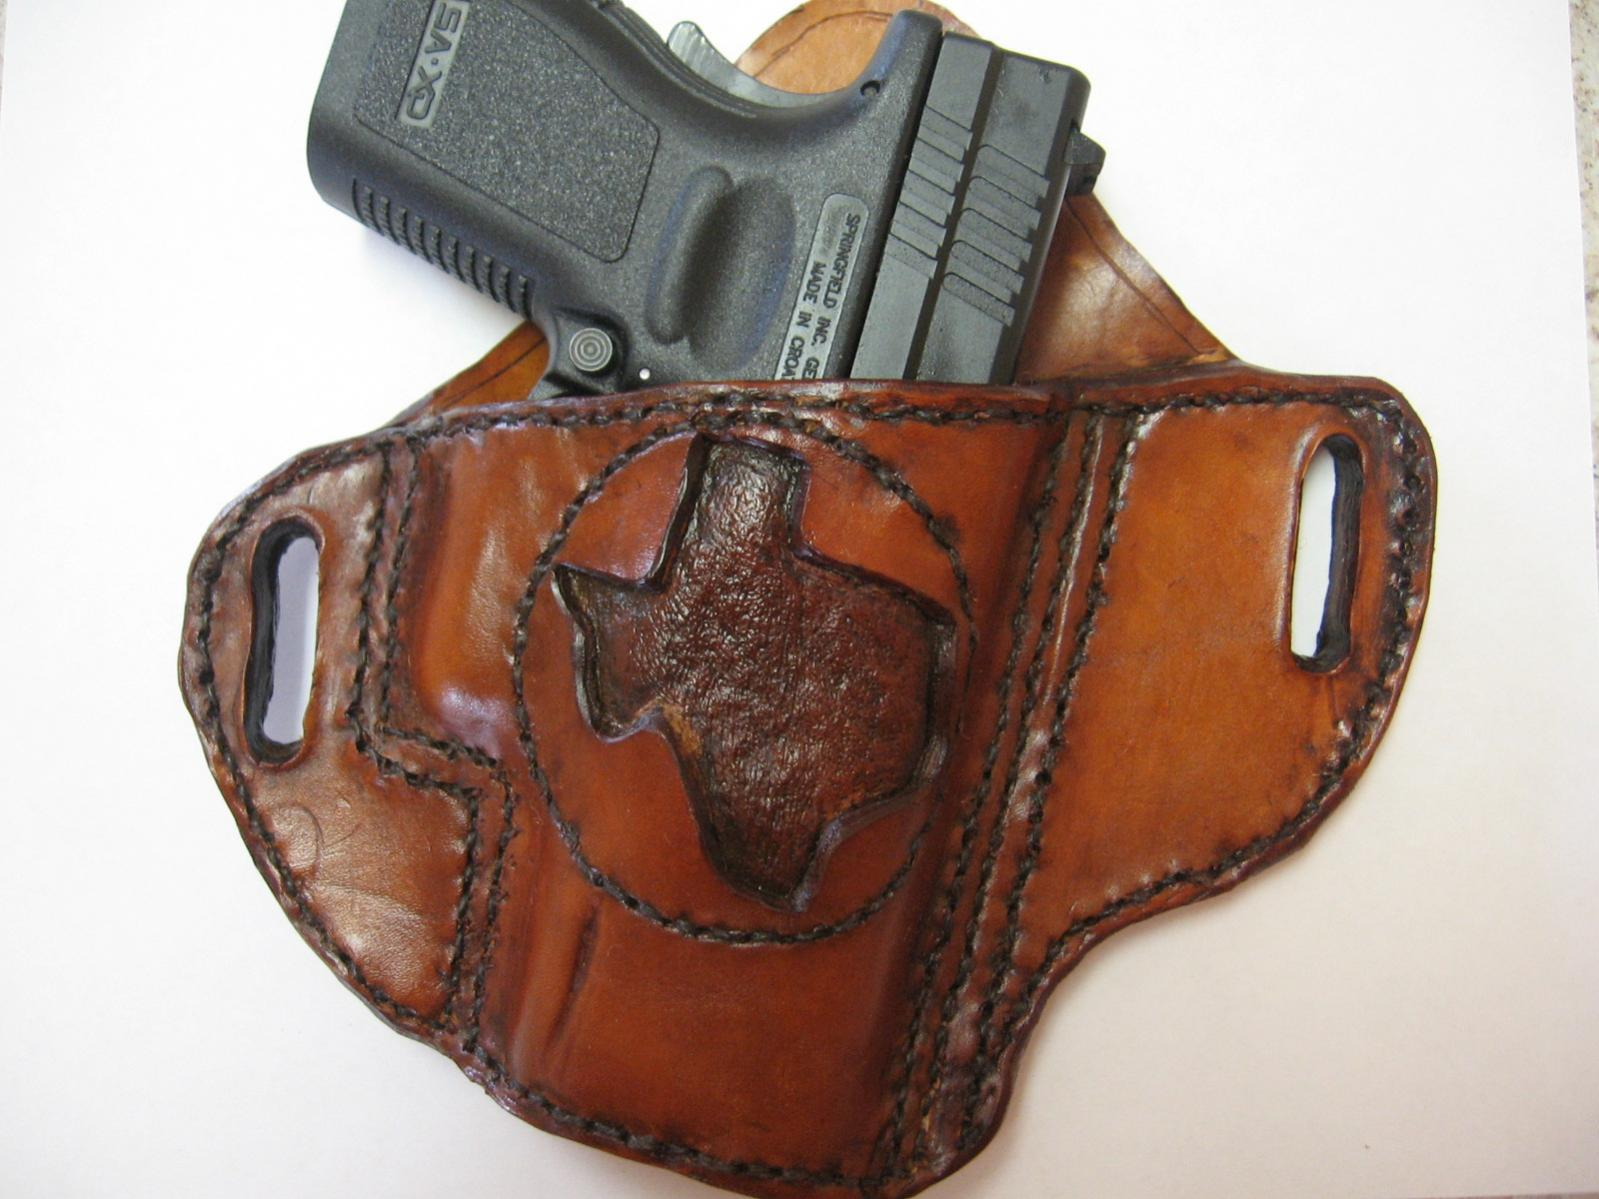 Gentlemanly holster for my XD-img_0008.jpg